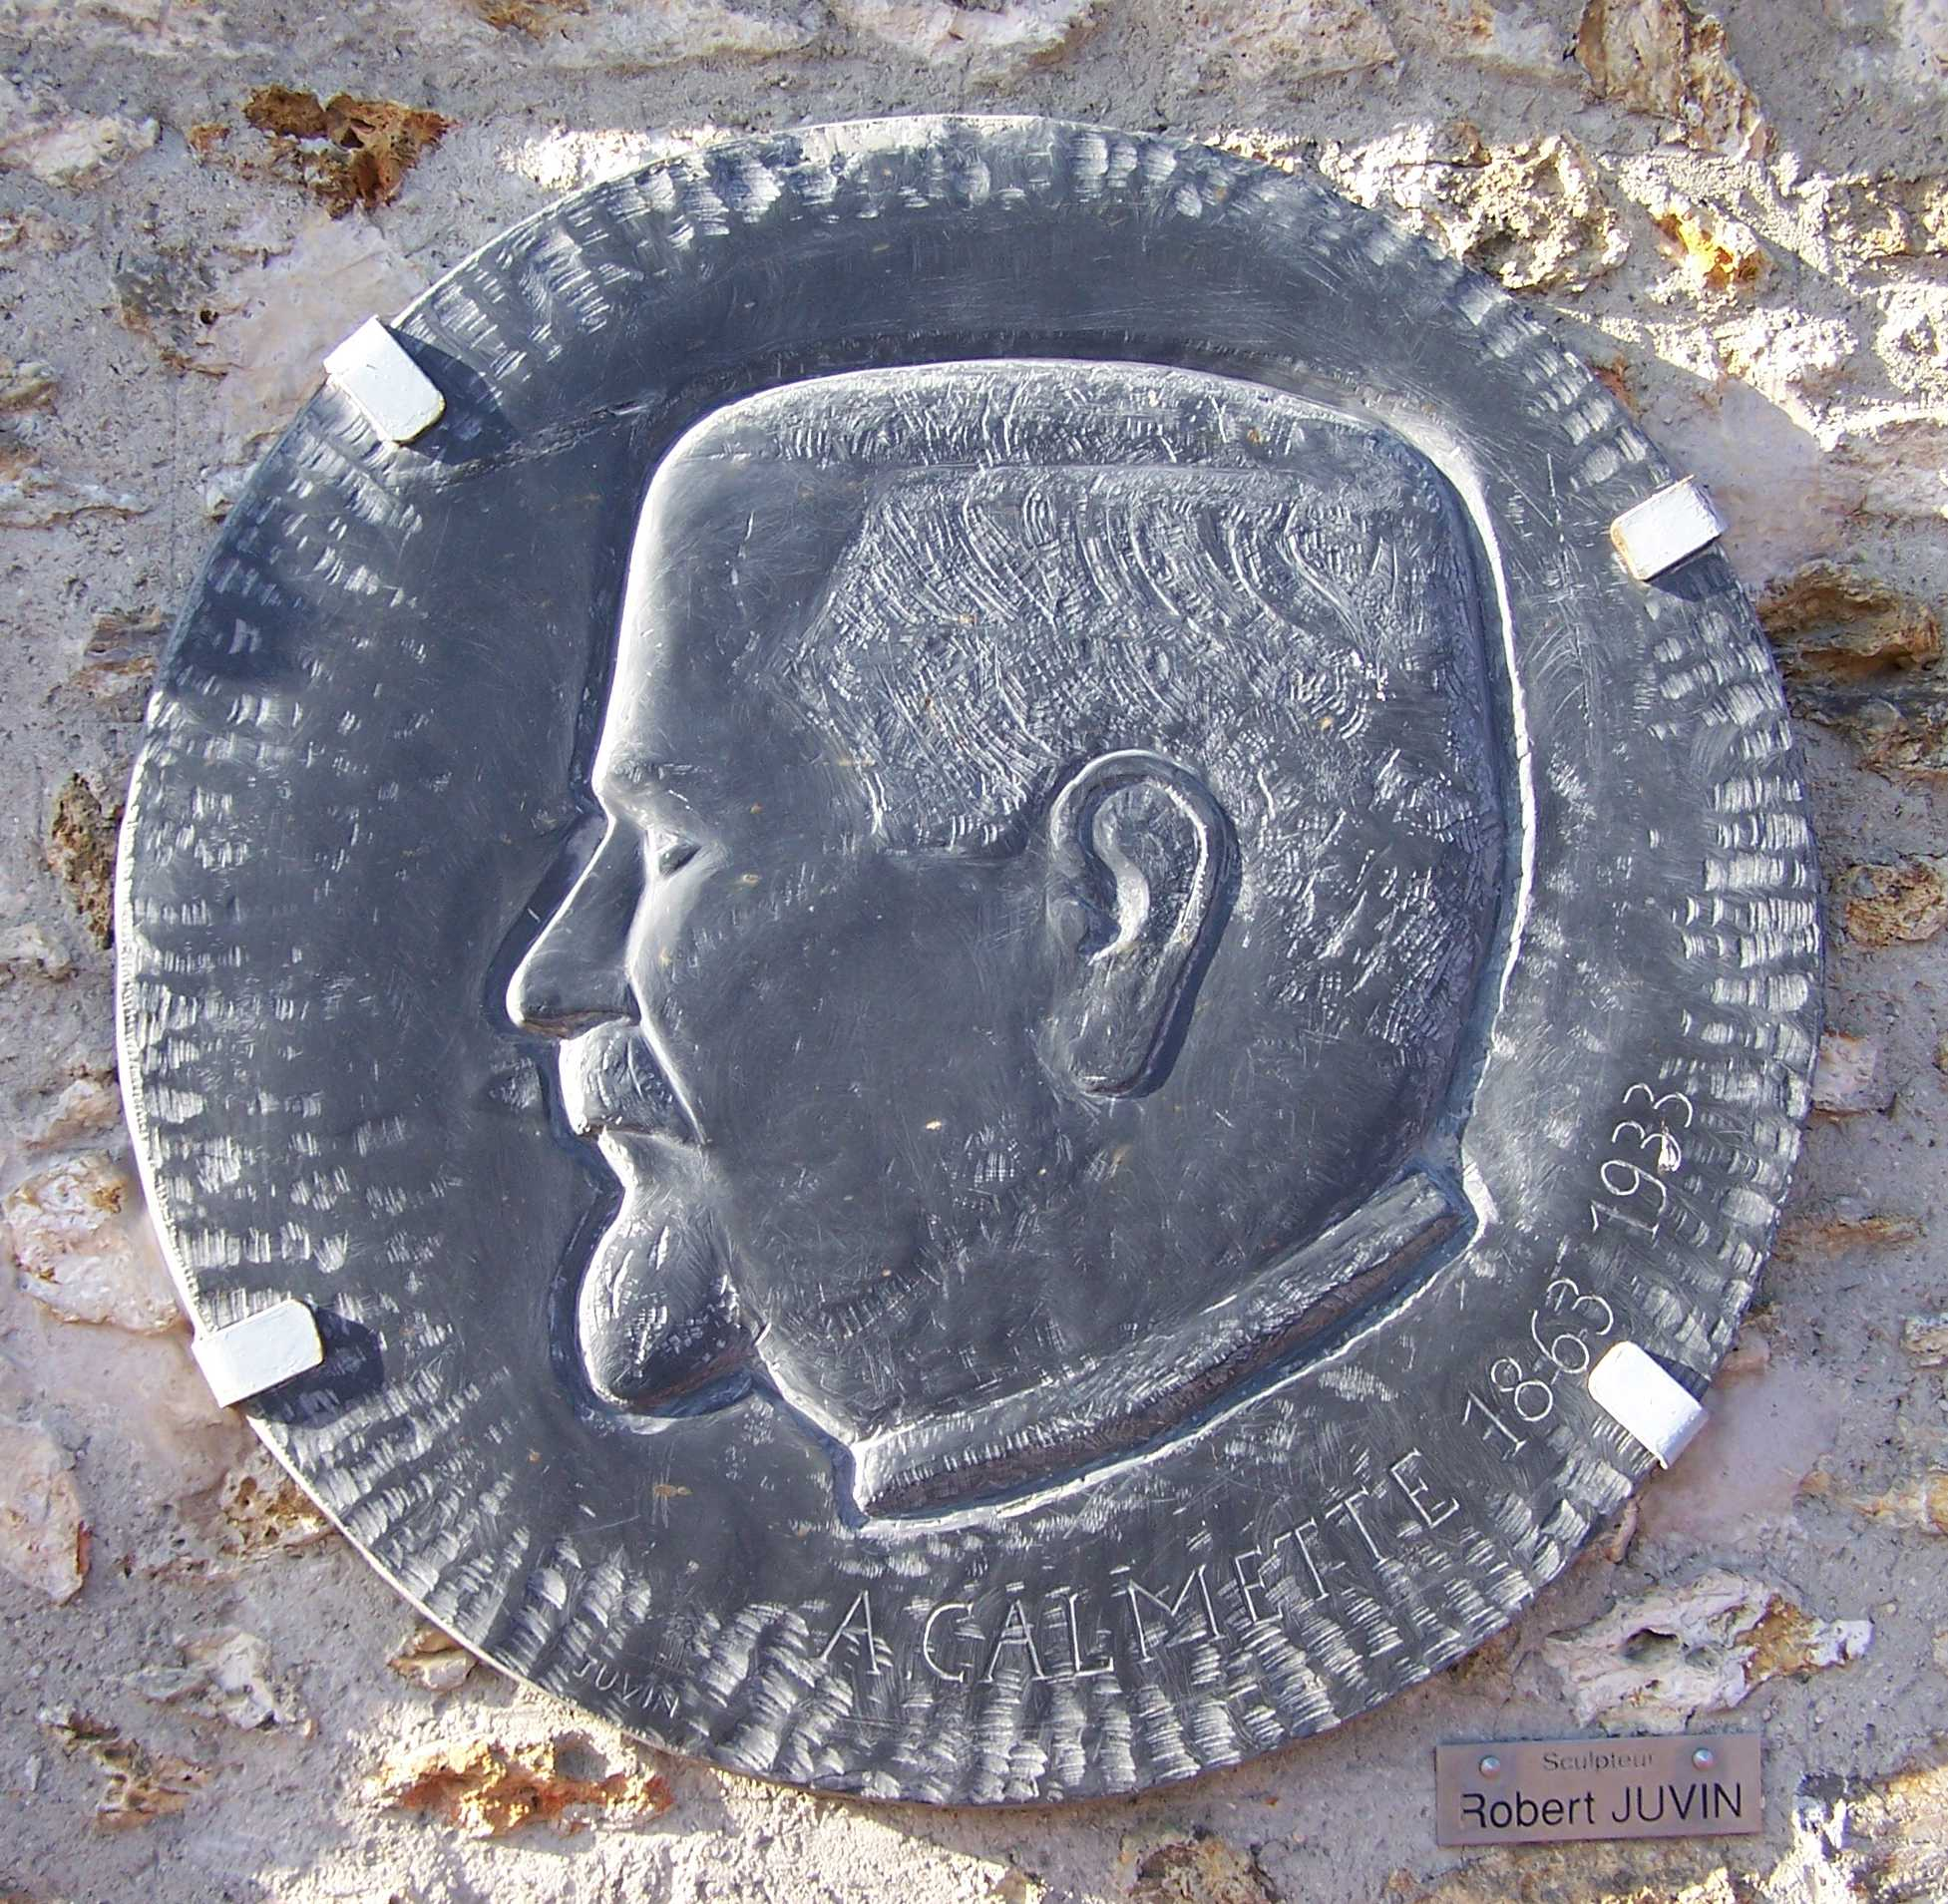 Depiction of Albert Calmette